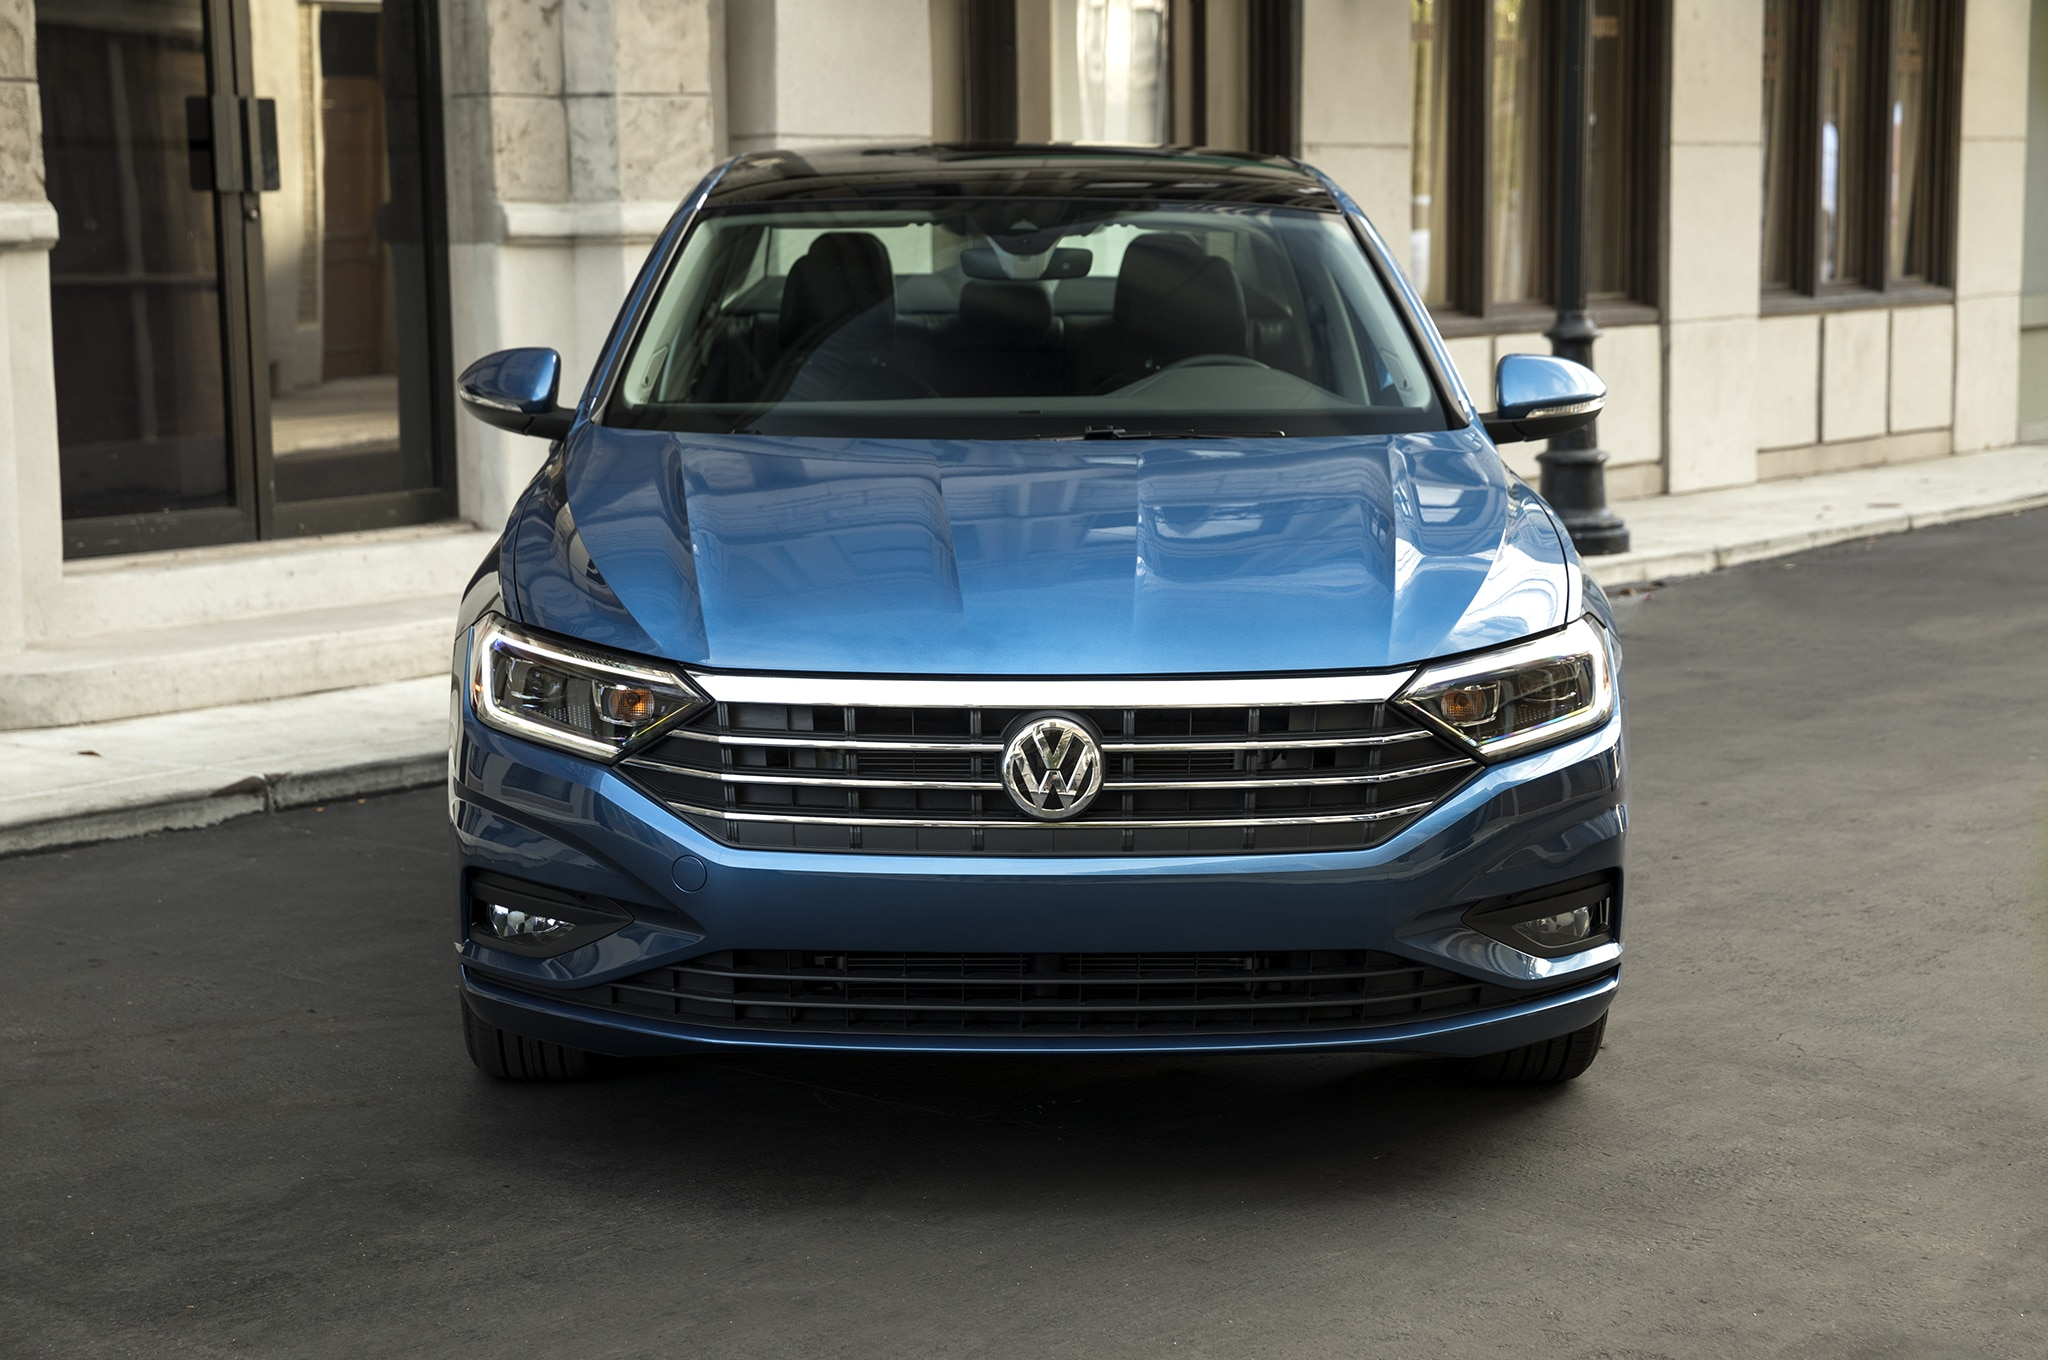 2019 volkswagen jetta first drive review automobile magazine. Black Bedroom Furniture Sets. Home Design Ideas